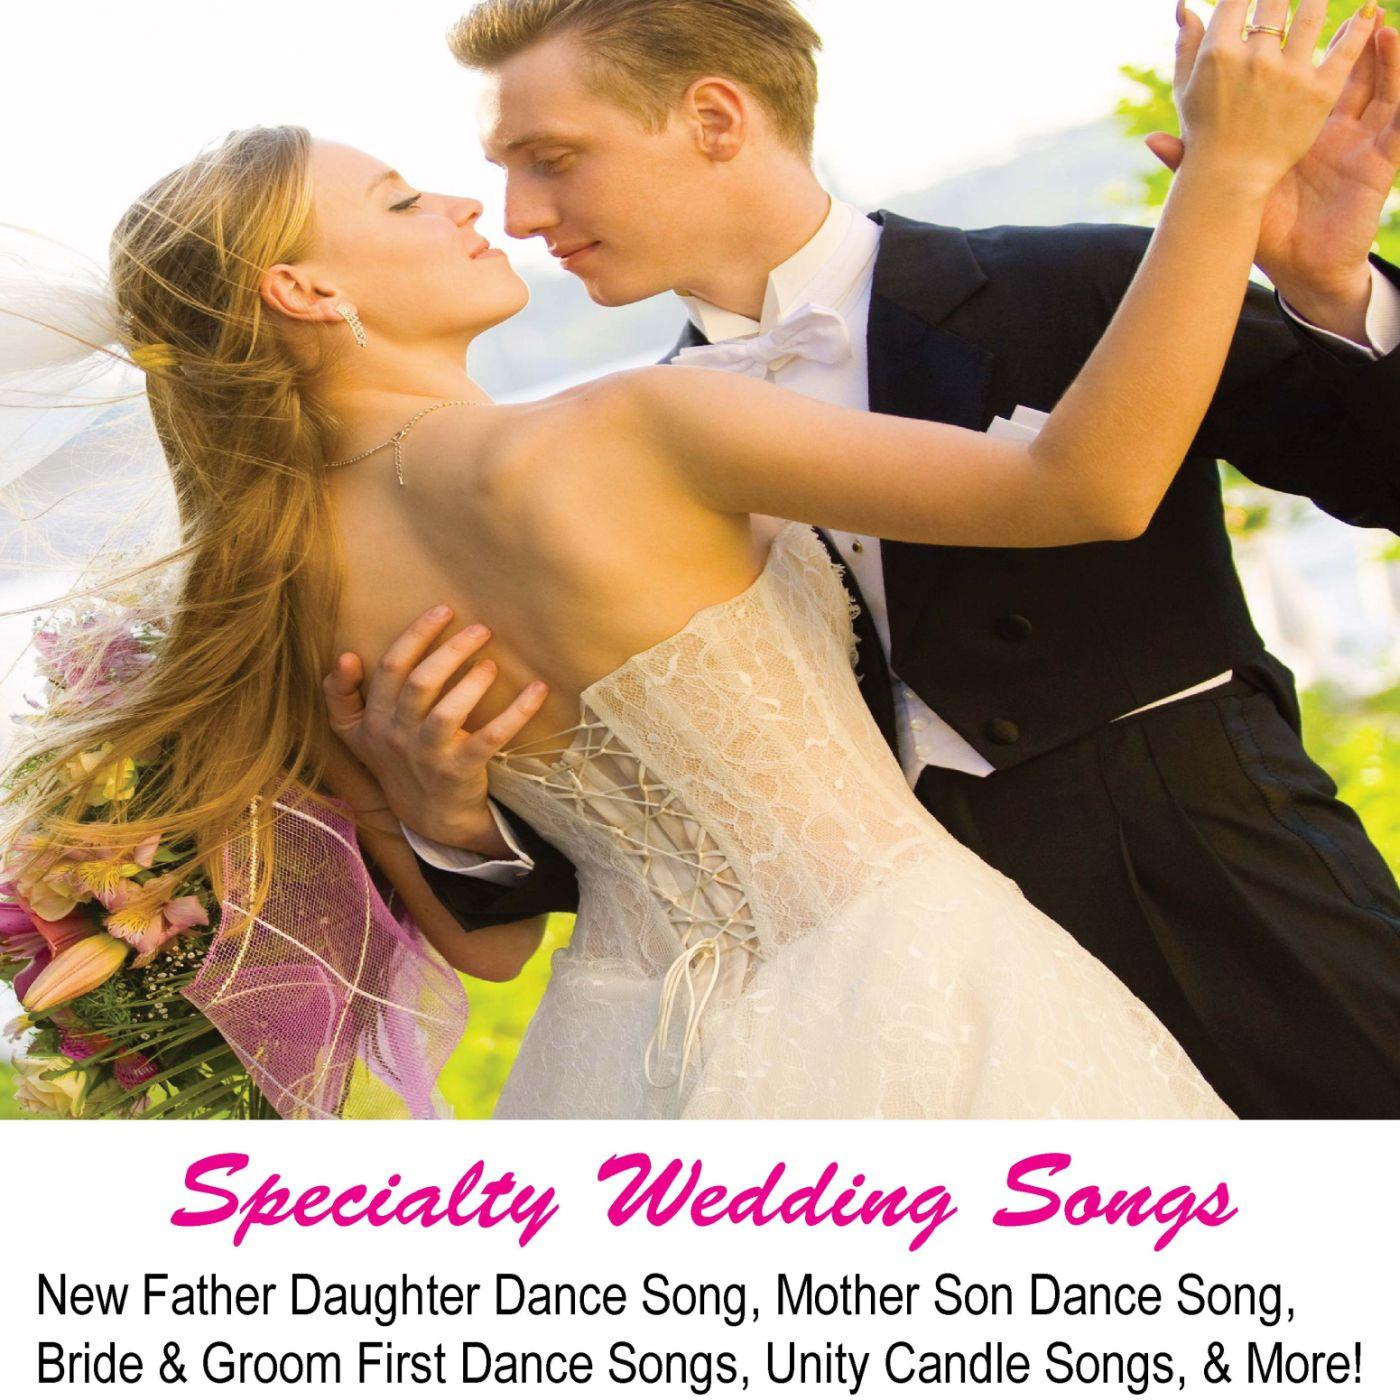 Wedding Songs To Download Are Now Available On ITunes From